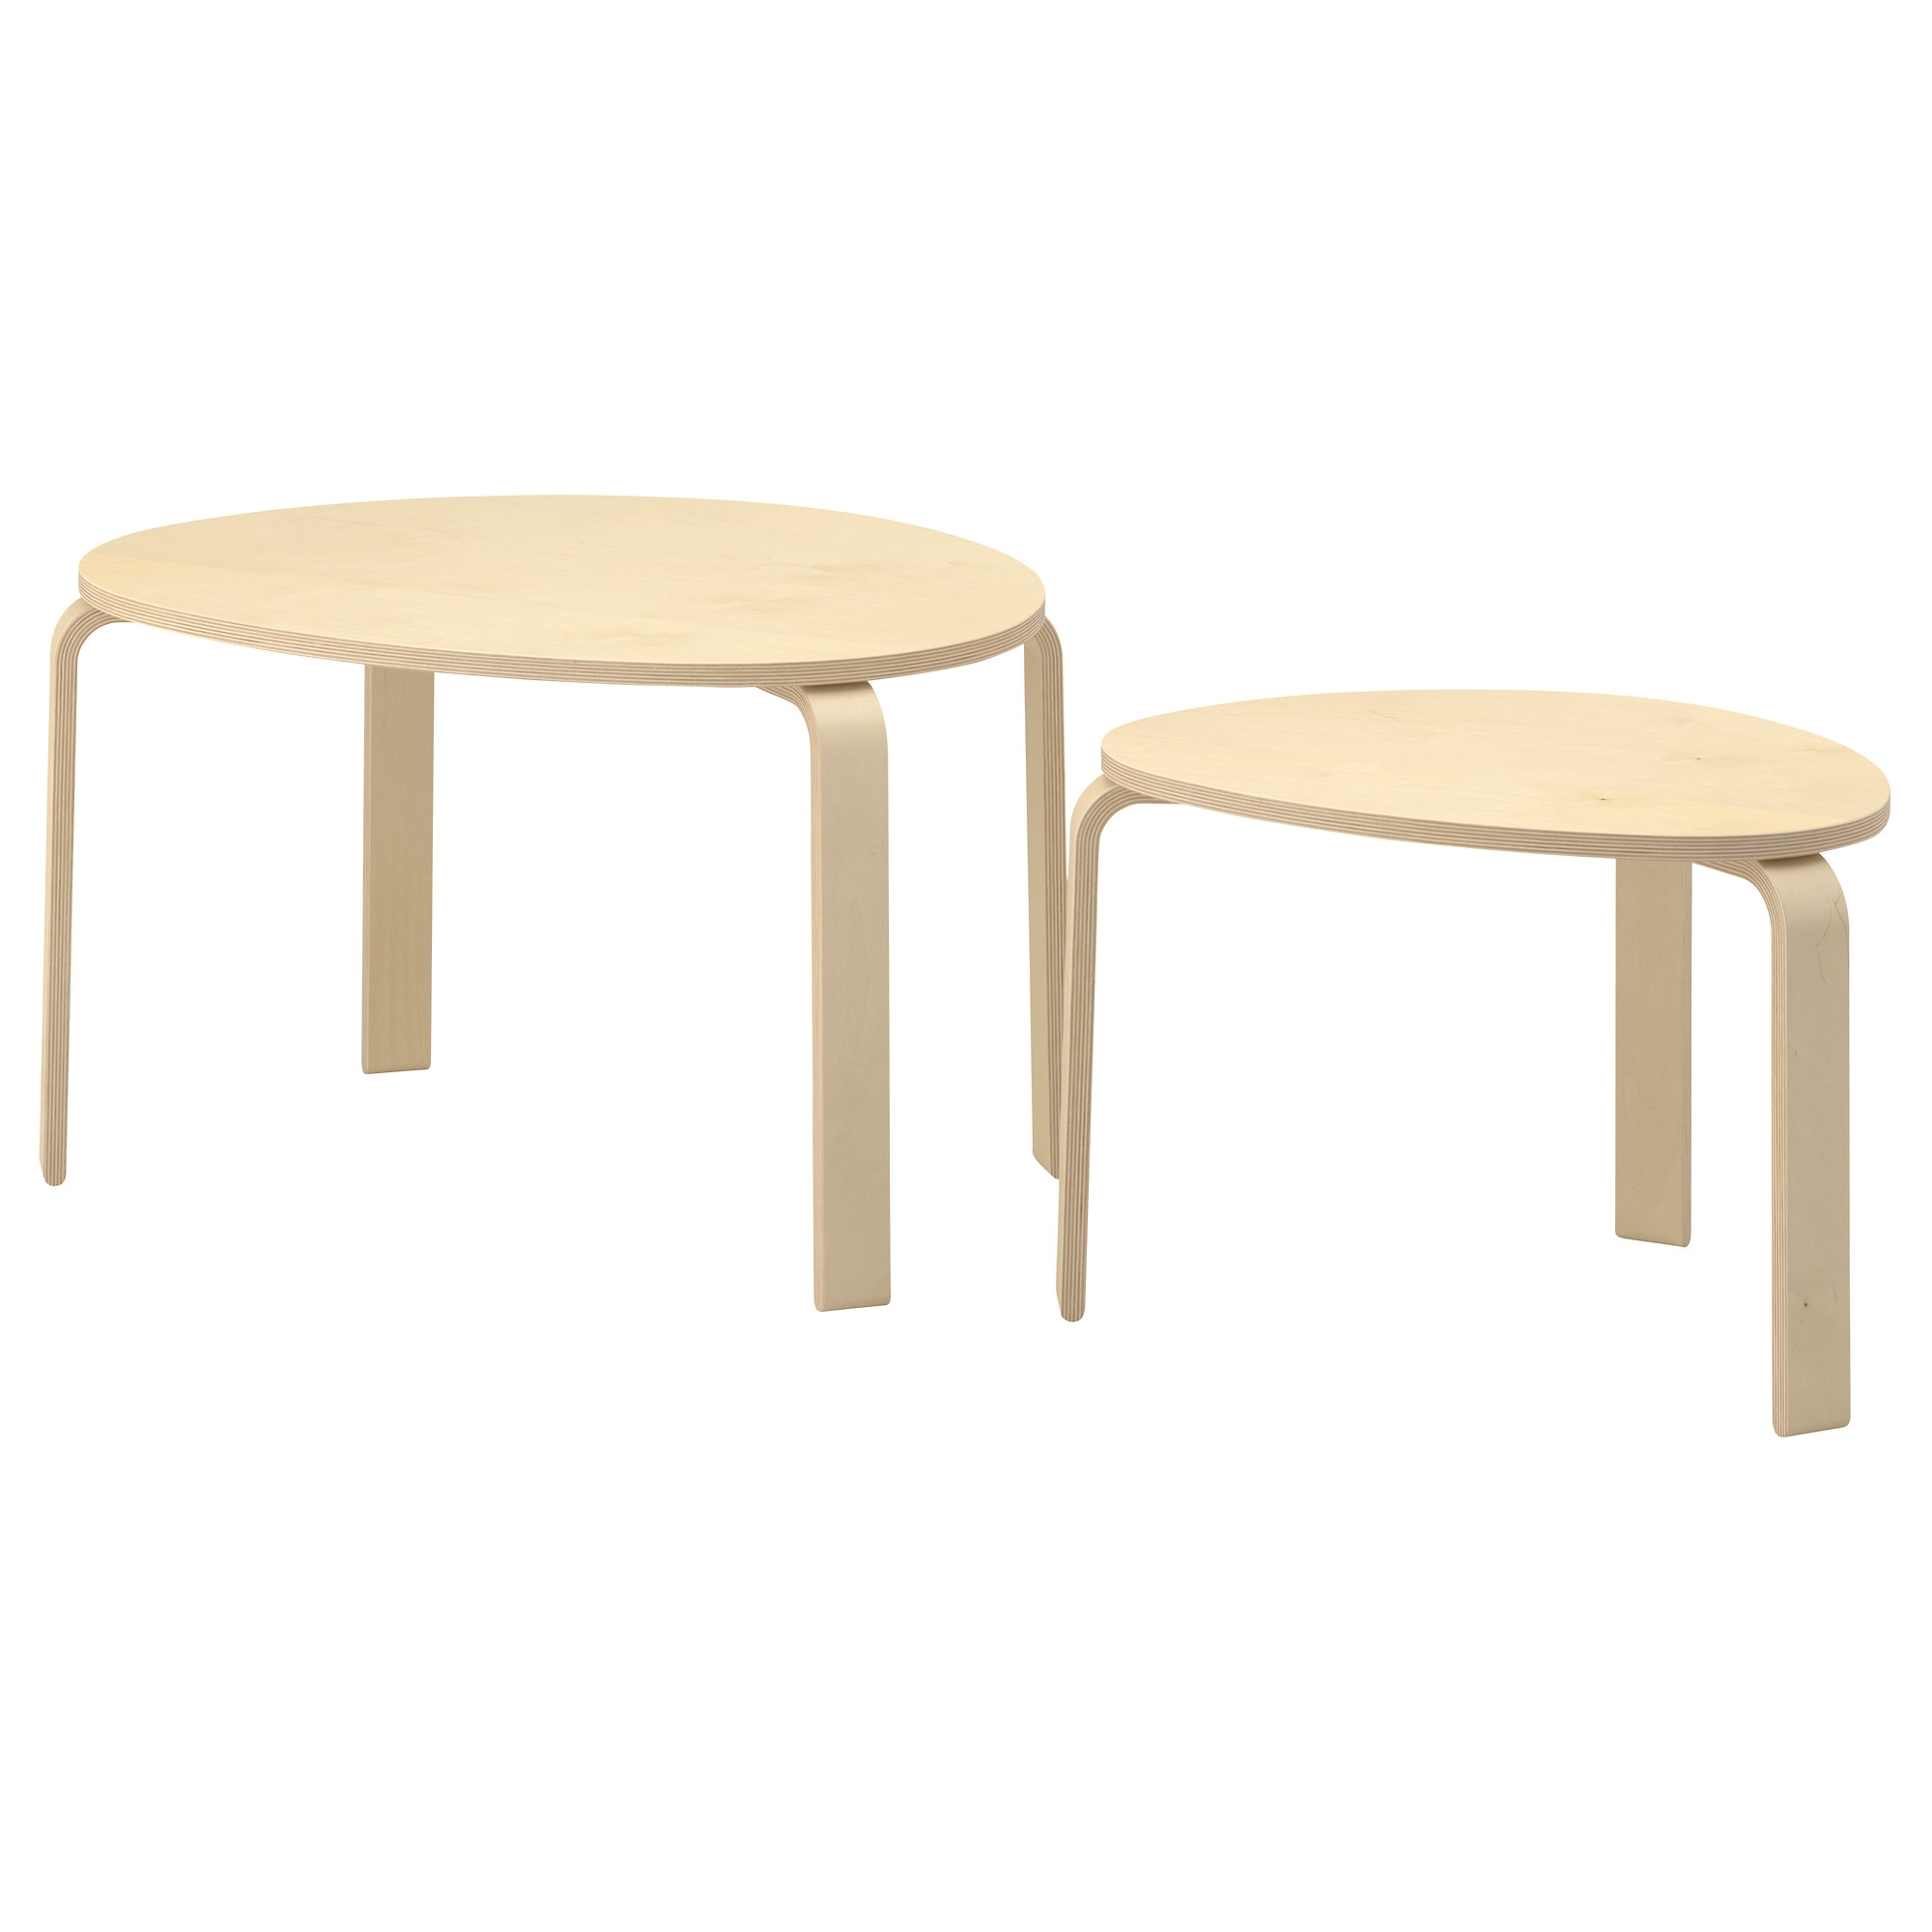 Ikea Latvia – Shop For Furniture, Lighting, Home Accessories & More Intended For Set Of Nesting Coffee Tables (View 13 of 30)